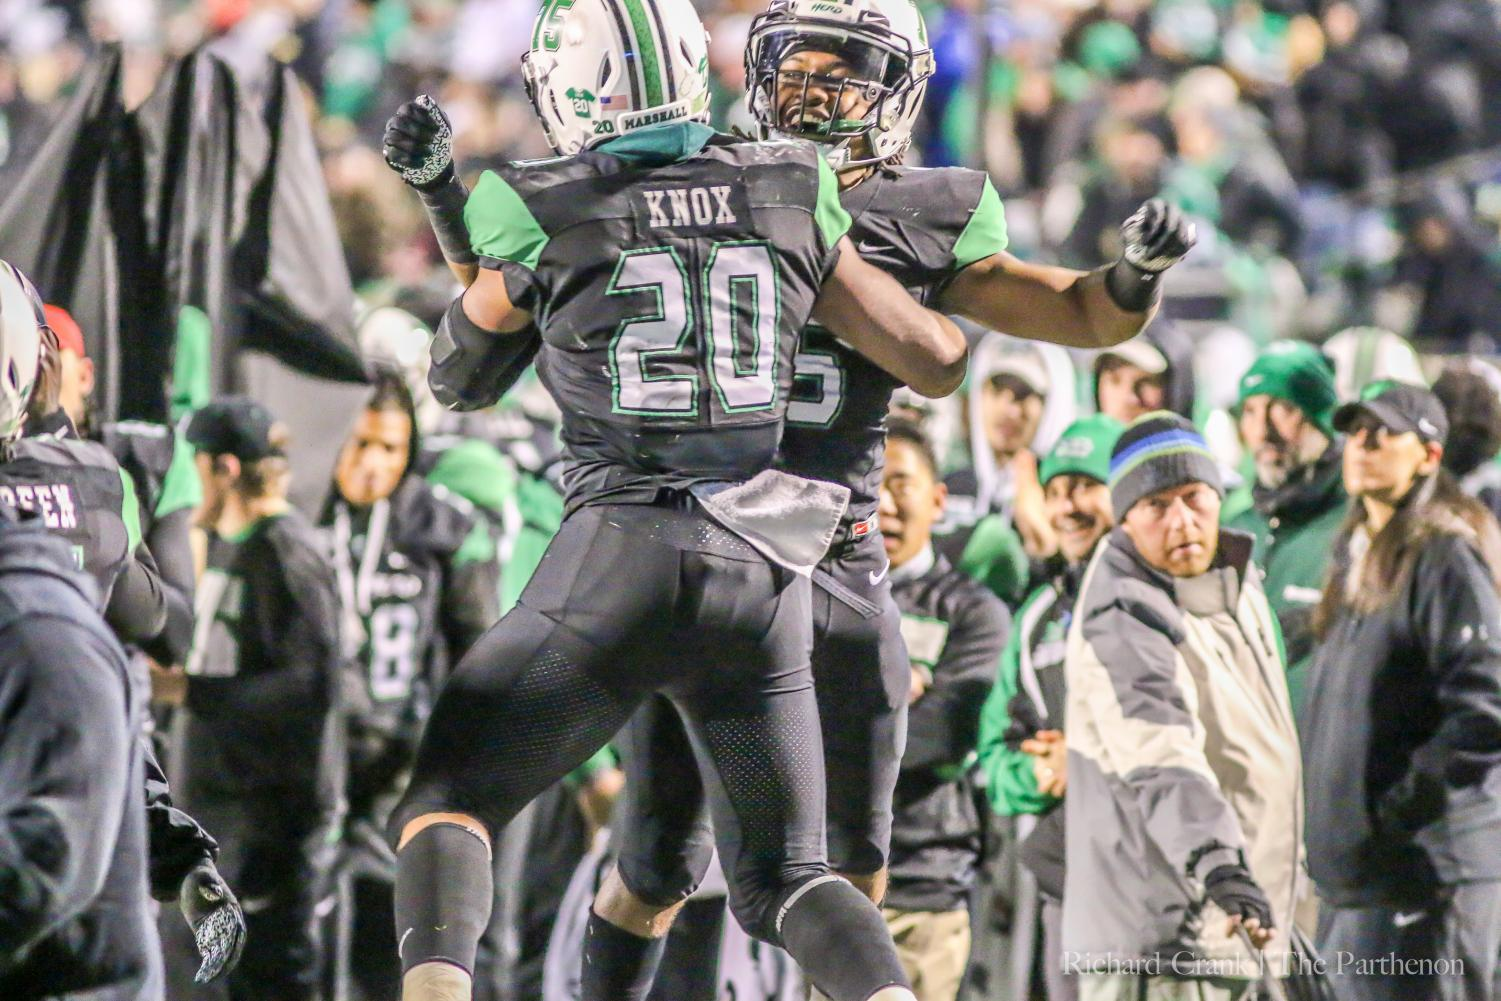 Brenden Knox and another football player celebrate after the touchdown in Saturday matchup against LA Tech.